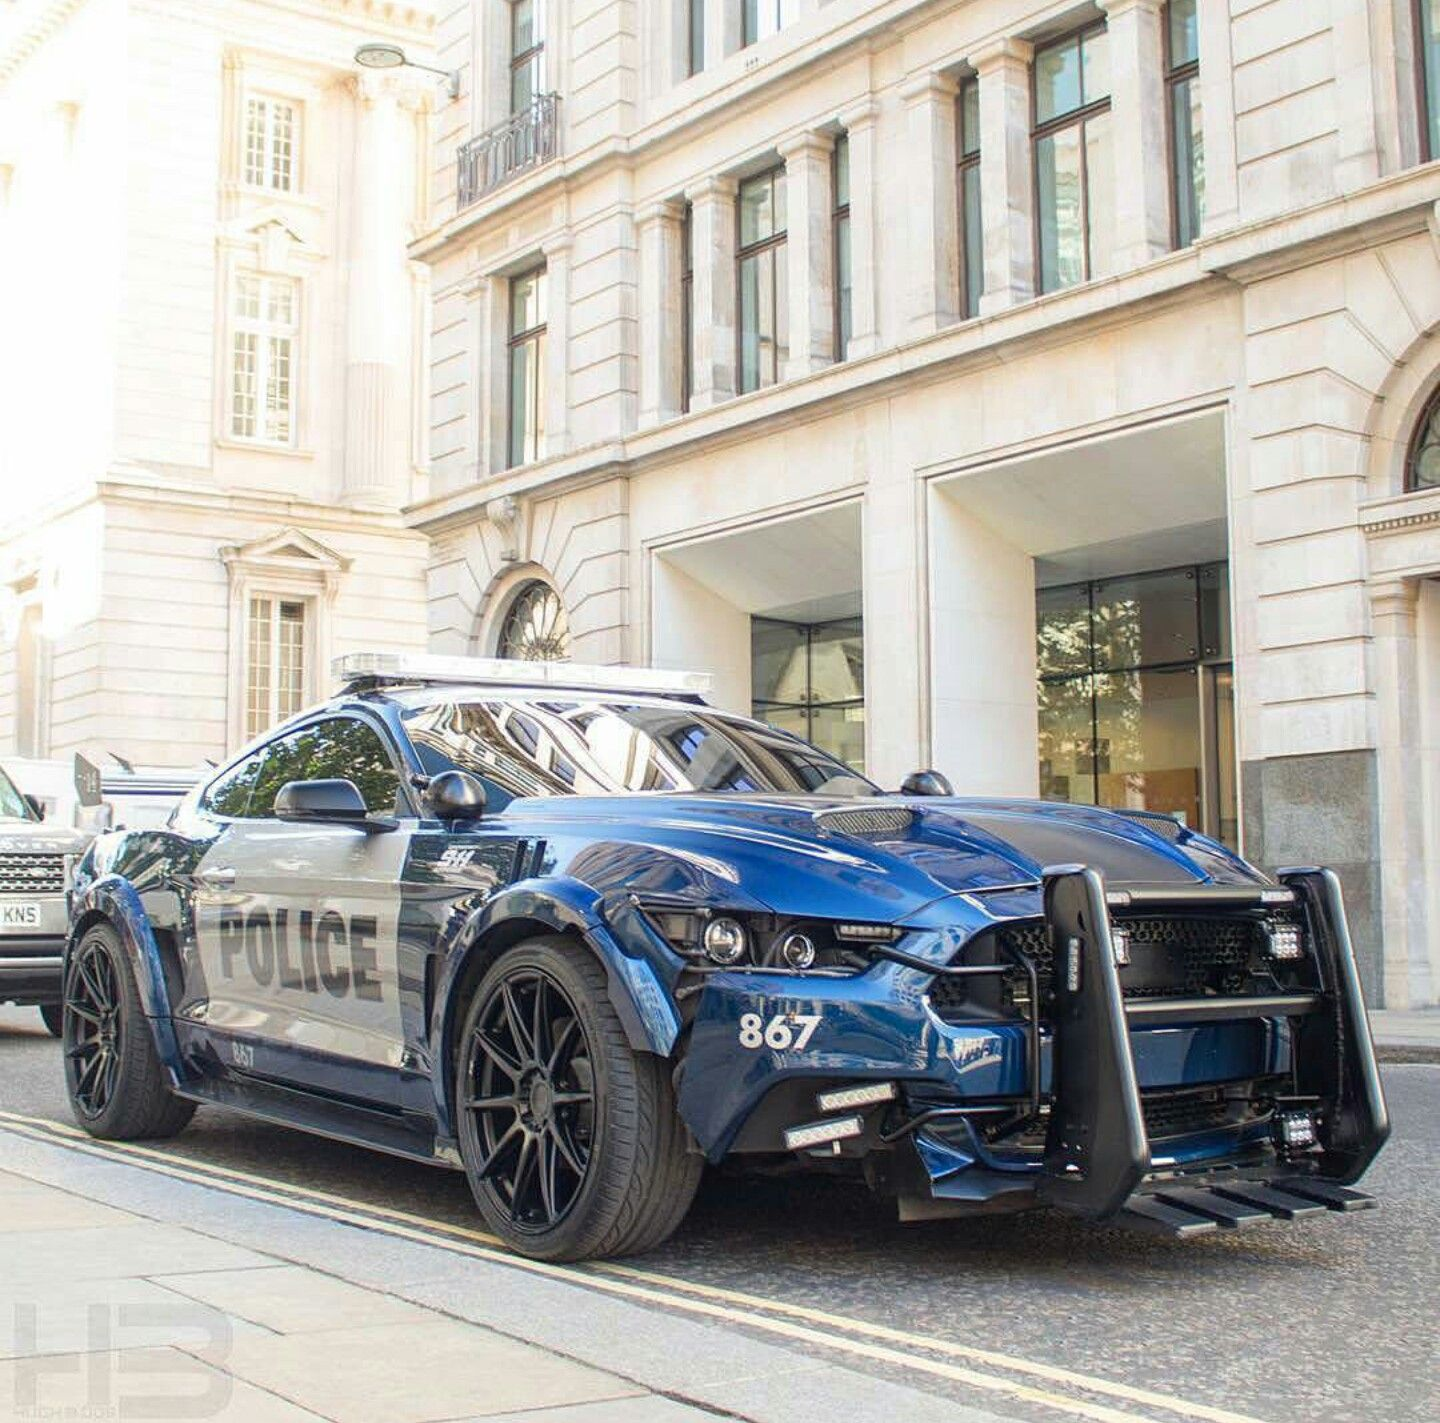 Best 25 ford police ideas on pinterest police cars car cop and state police